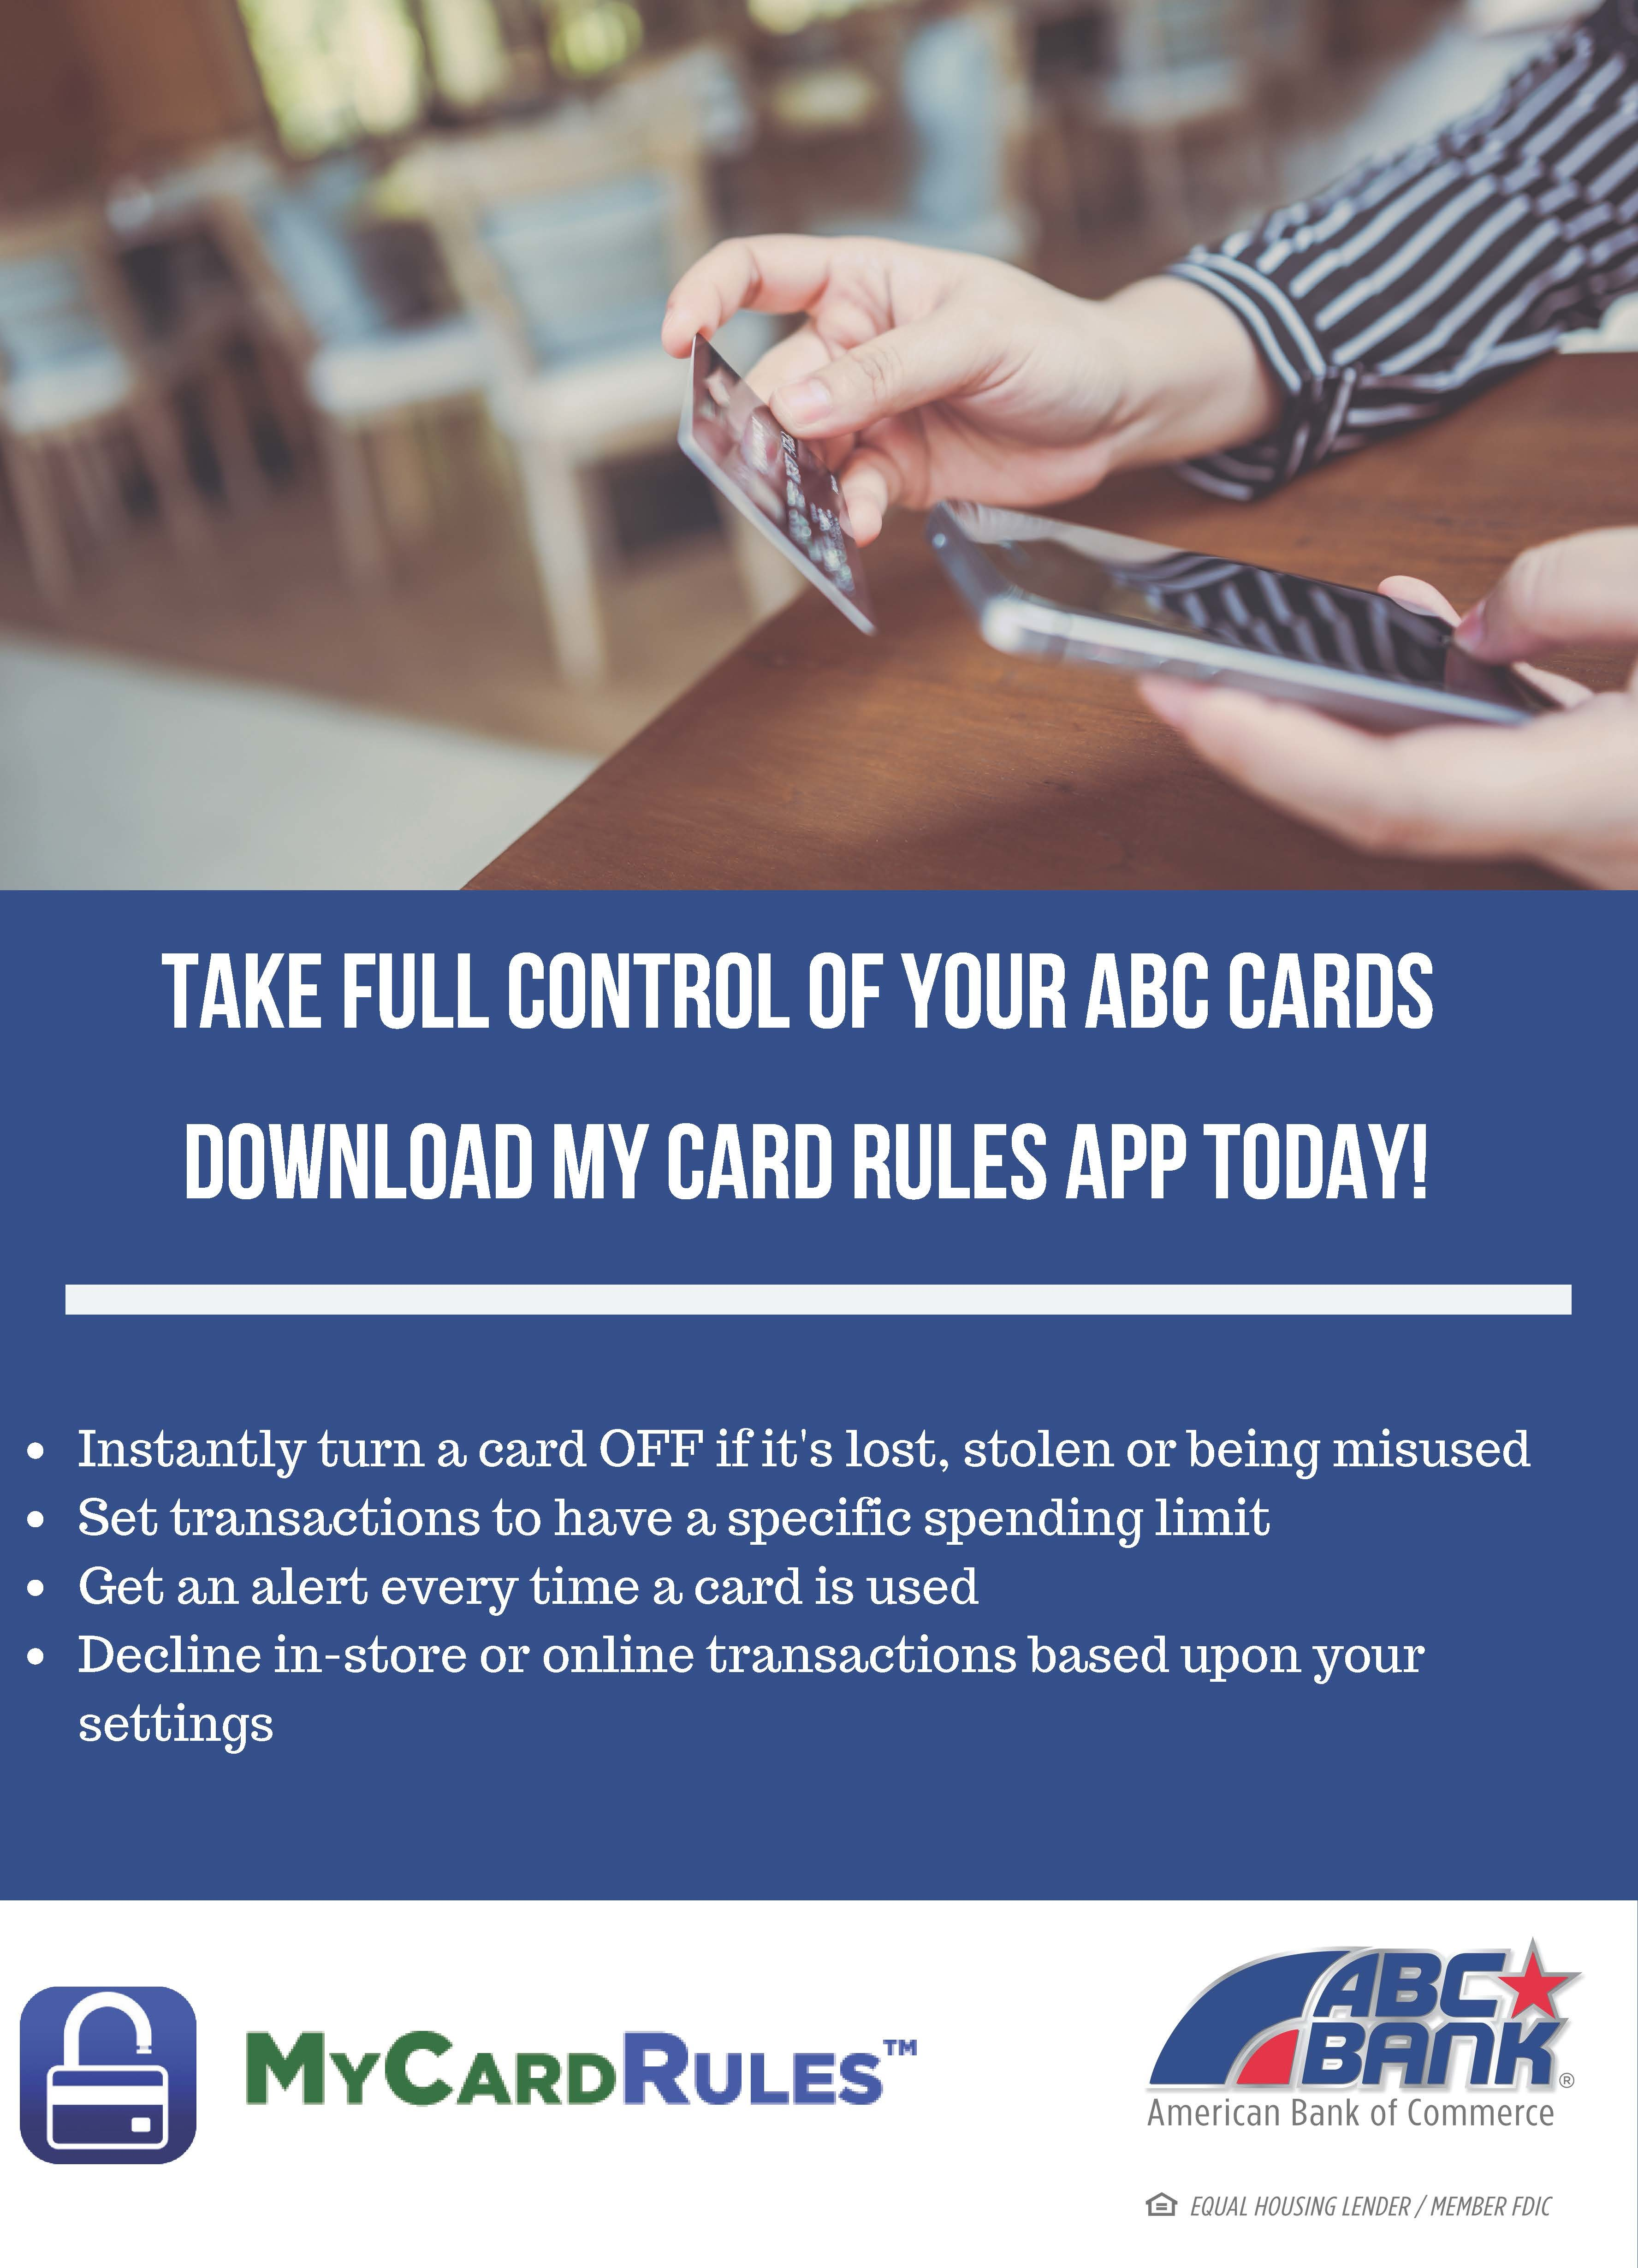 Control Your Cards: New ABC Bank Product, 'MyCardRules,' Assists Consumers With Fraud Prevention